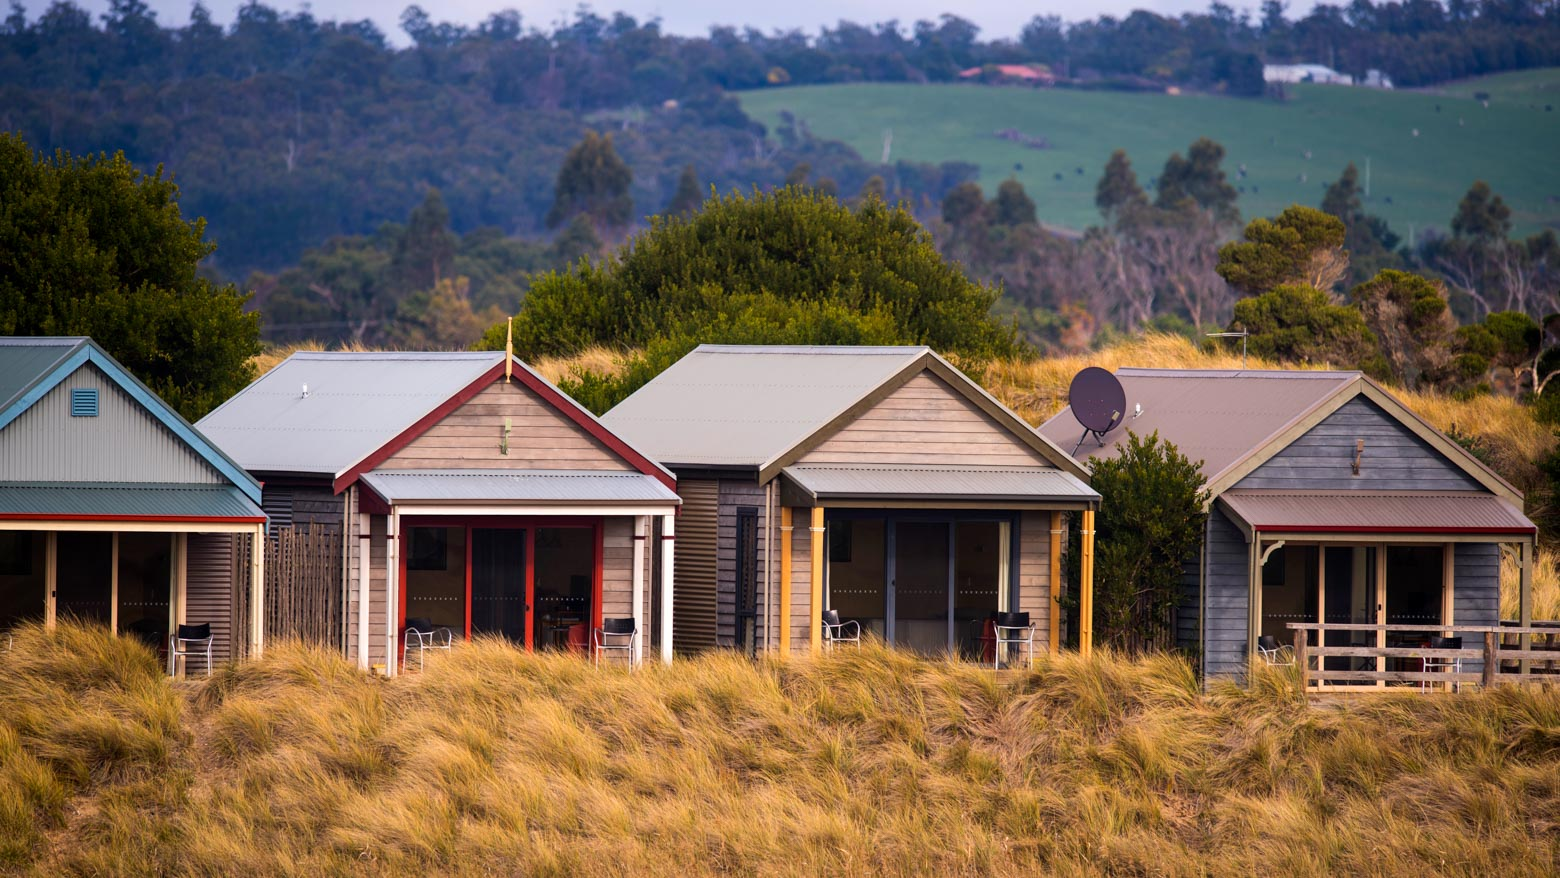 Stay at Barnbougle Cottages on your Lap of Tasmania road trip